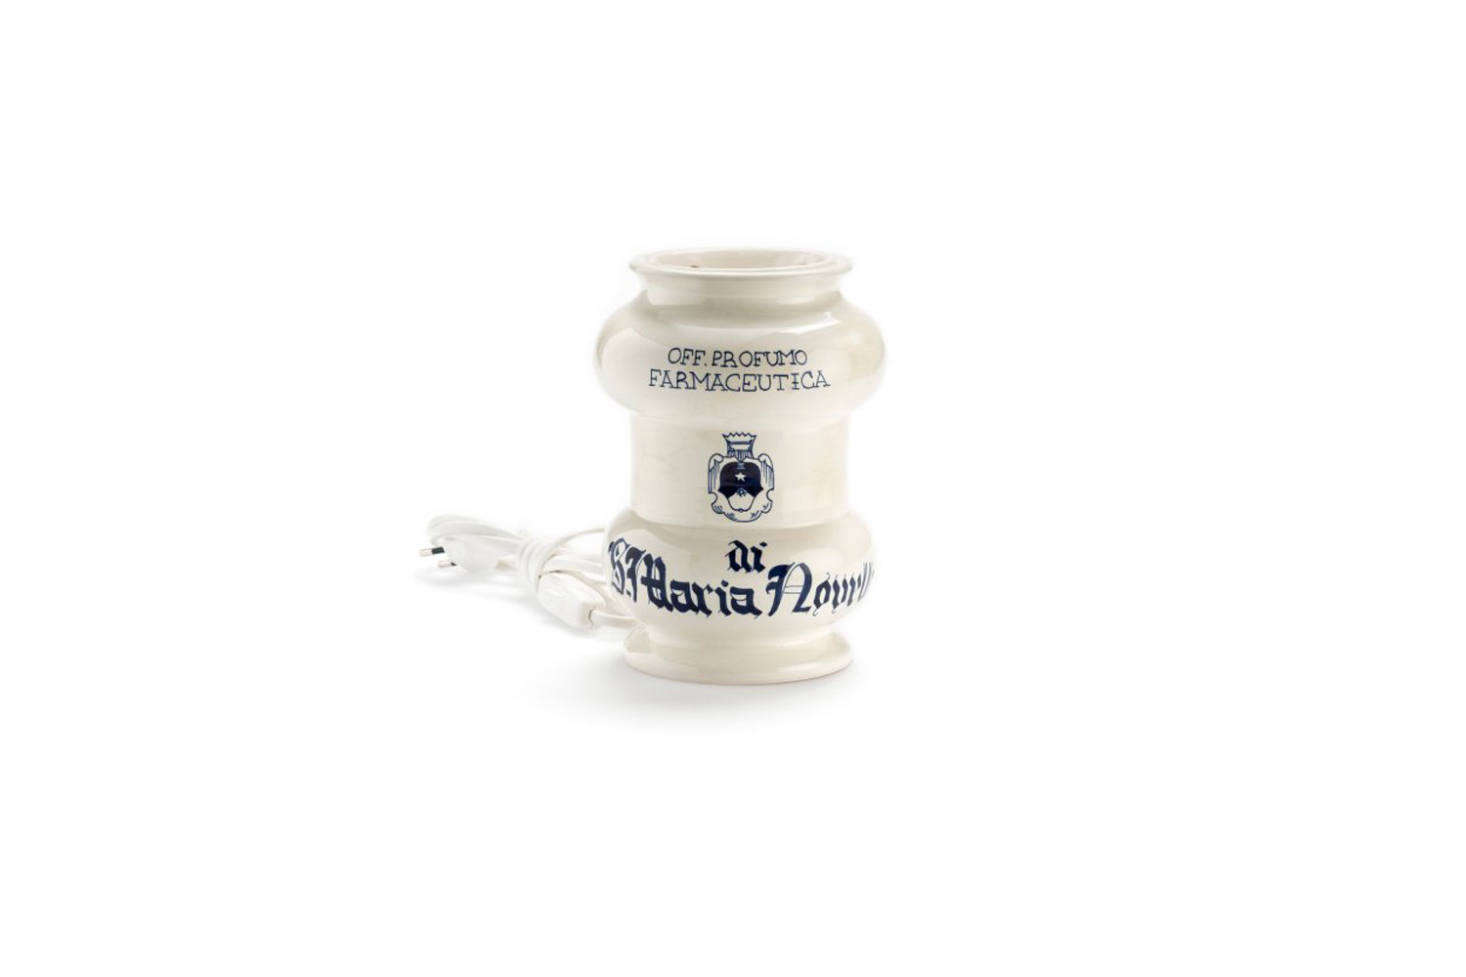 Makers of our favorite potpourri, Santa Maria Novella makes a white and blue Ceramic Perfume Burner, handmade by master potters in Montelupo Fiorentino designed to be used with any of the brand&#8